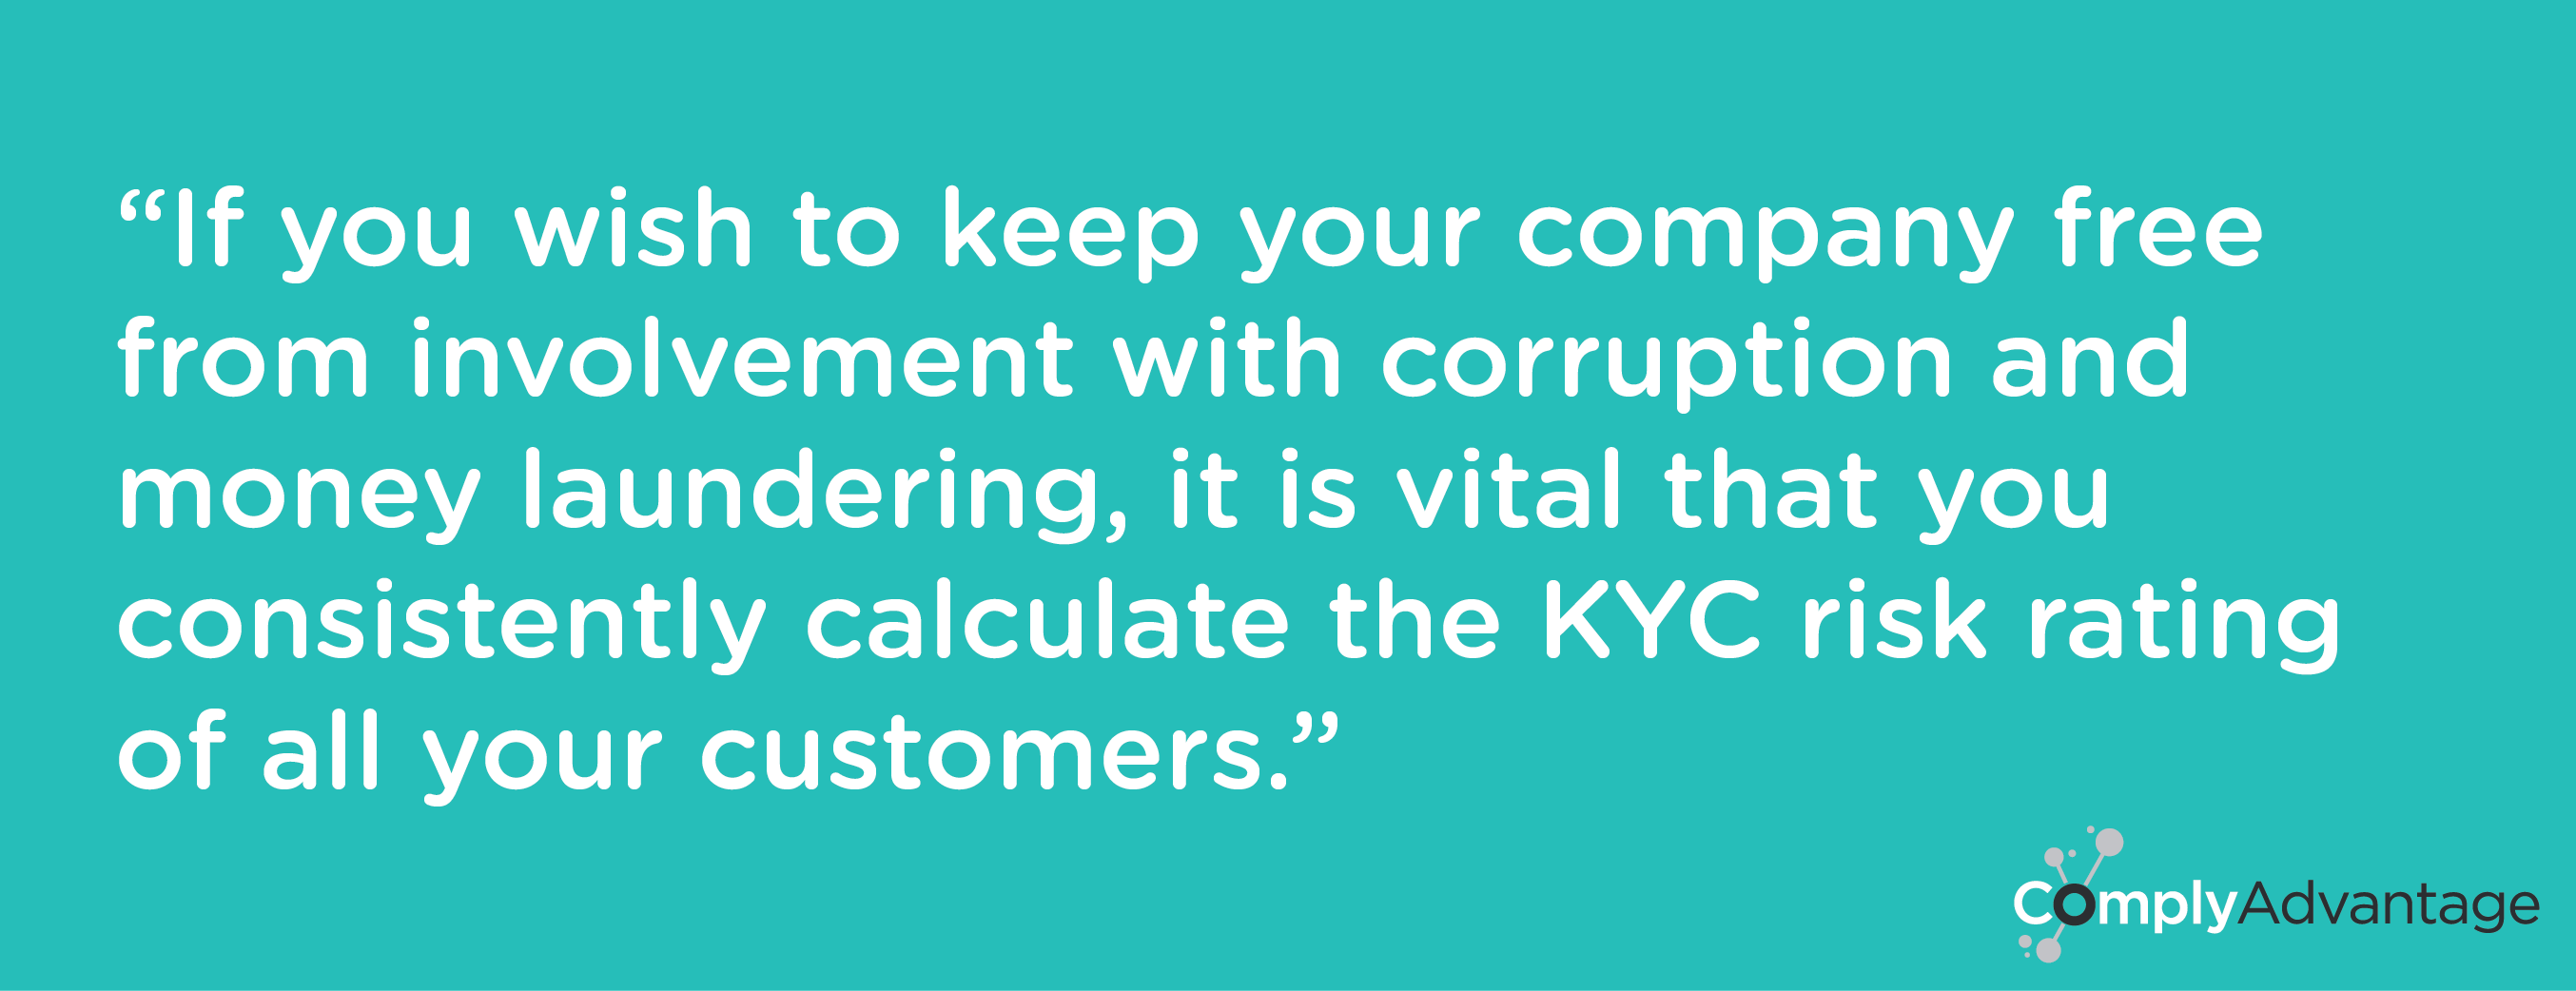 KYC Risk Rating ComplyAdvantage